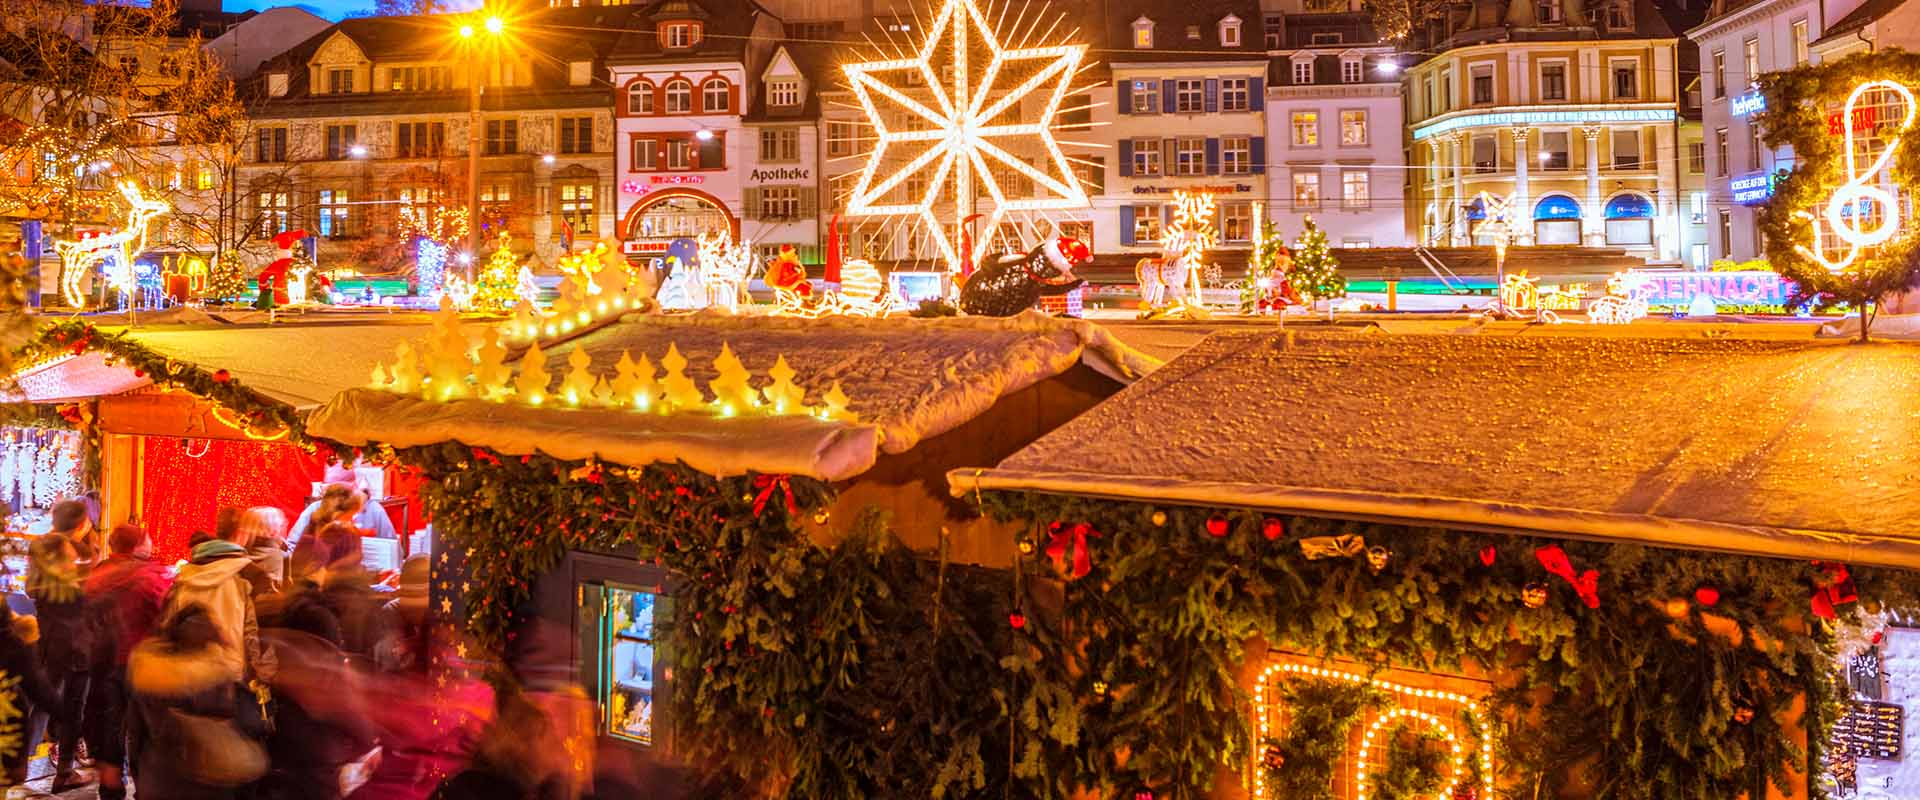 Christmas In Switzerland.Christmas 2019 And 2020 Publicholidays Ch